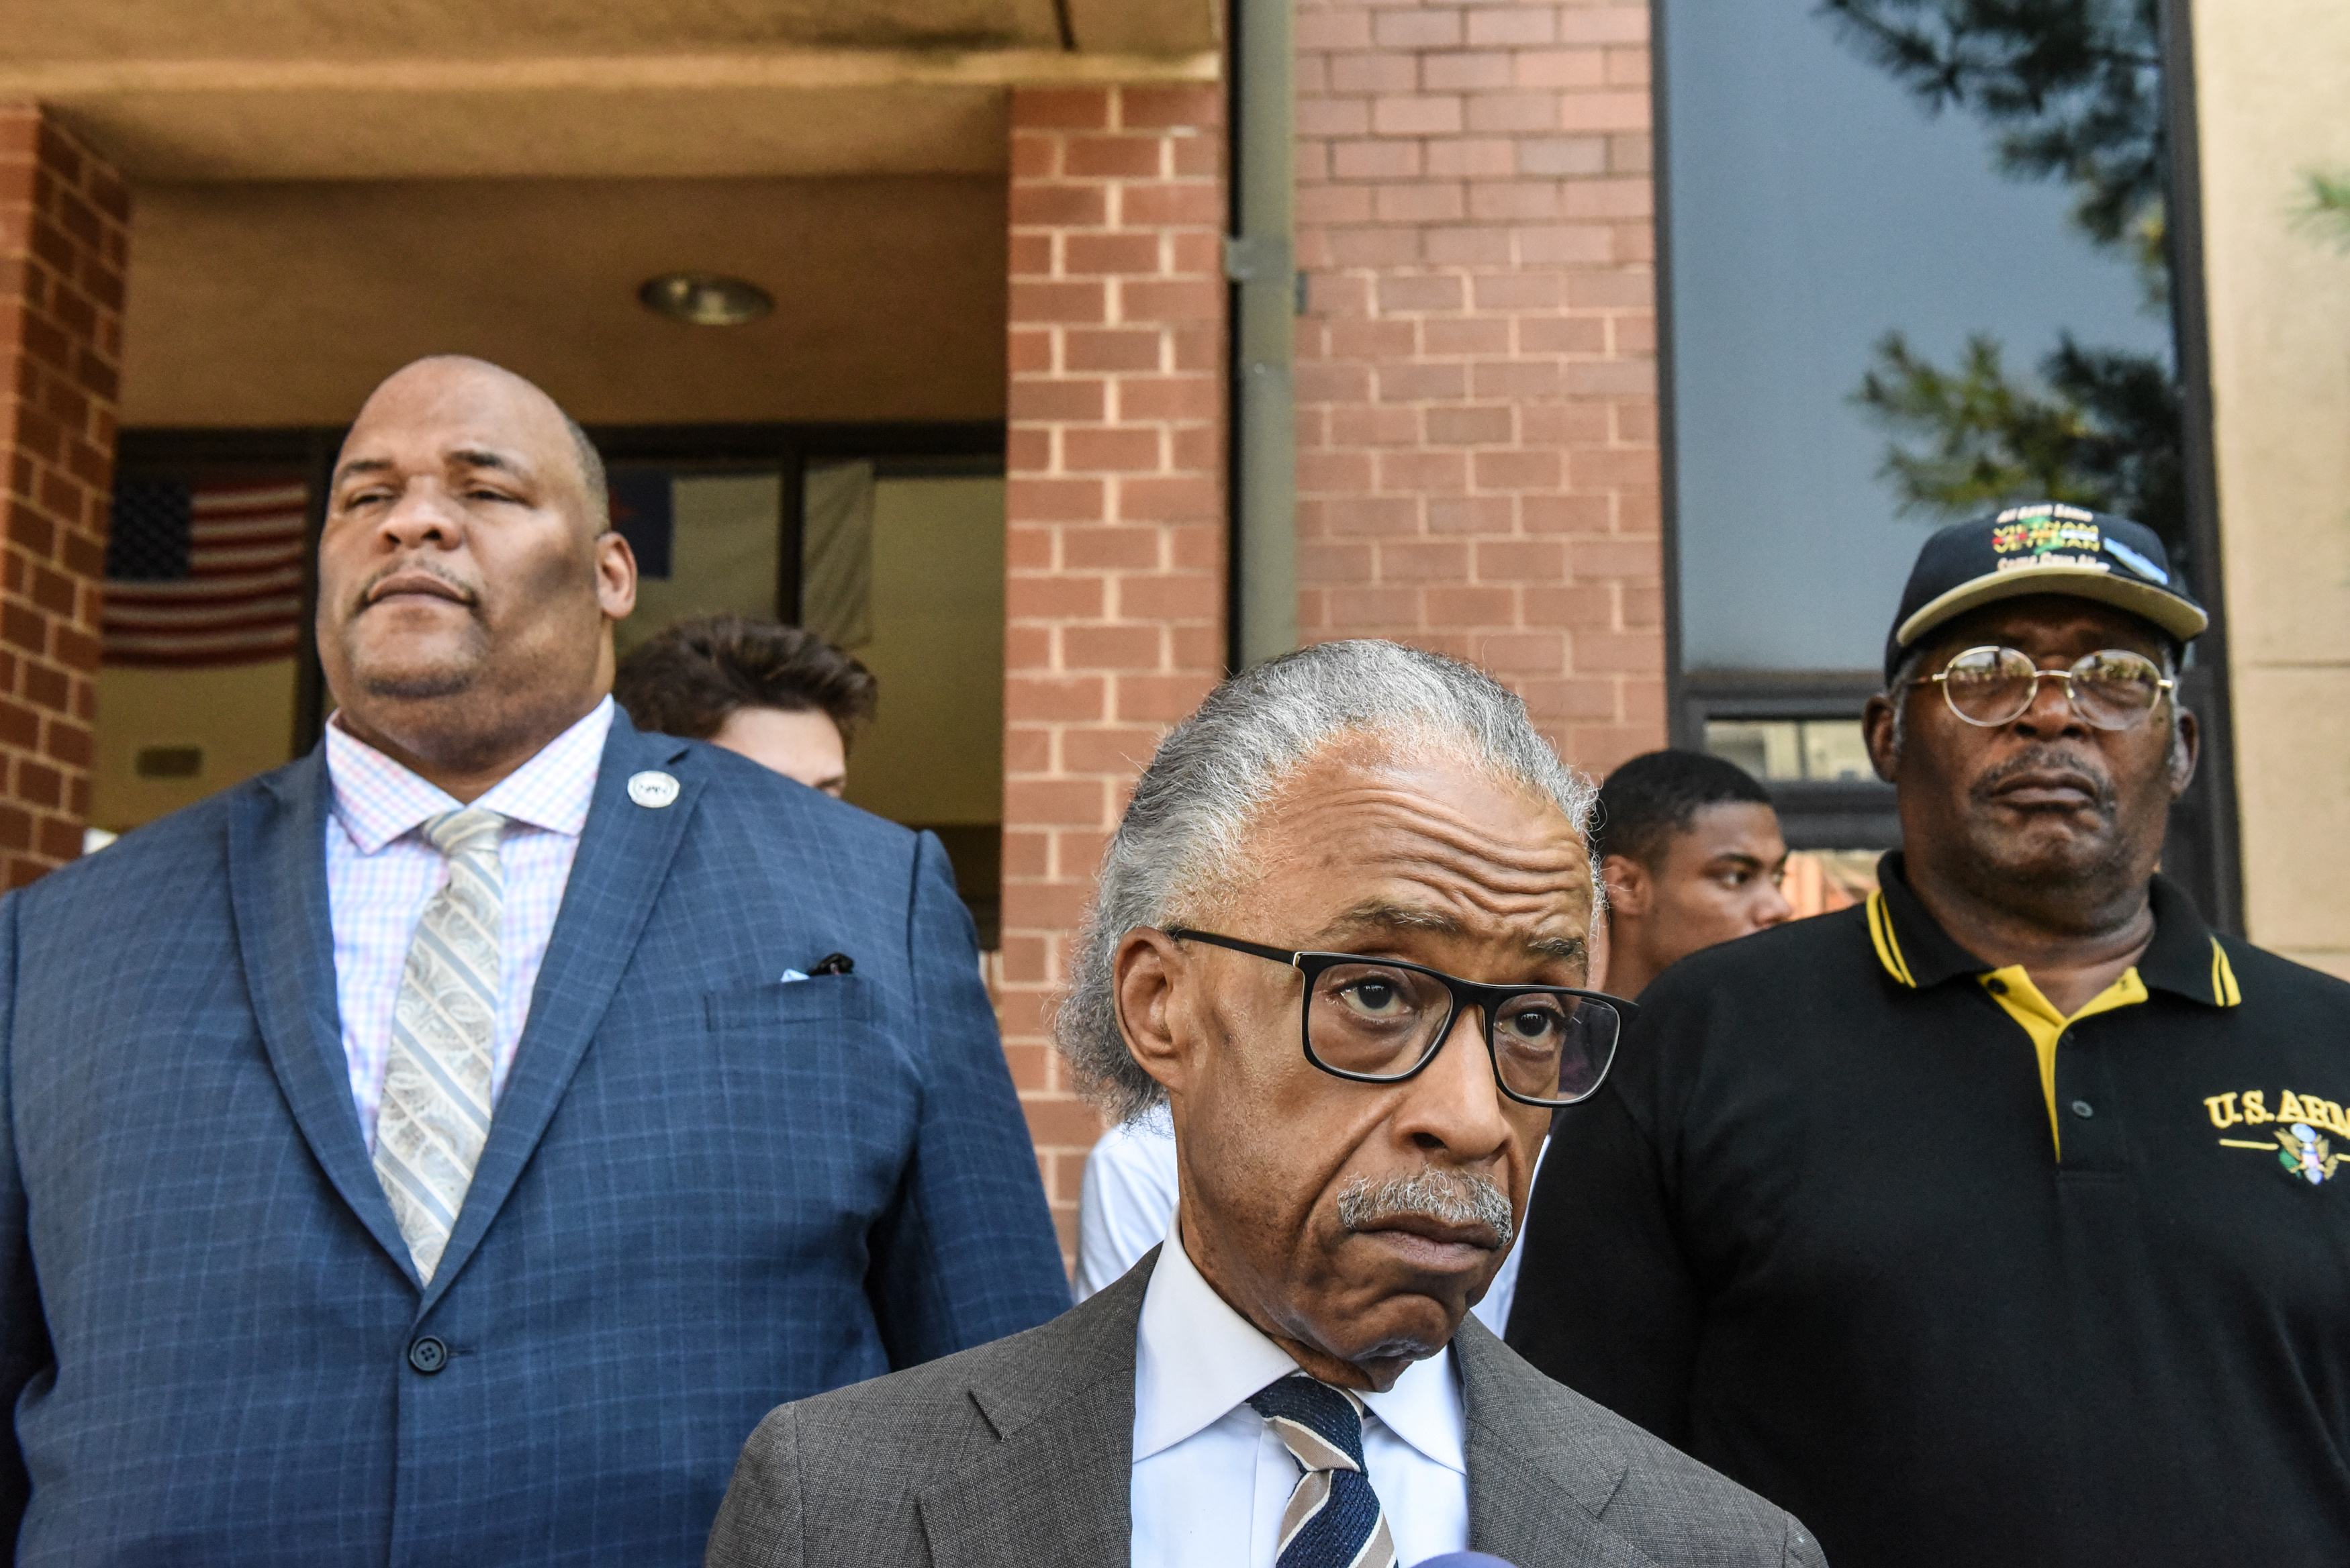 Reverend Al Sharpton from the National Action Network speaks with reporters about U.S. President Donald Trump's tweets about Baltimore in Baltimore, Maryland, U.S., July 29, 2019. REUTERS/Stephanie Keith